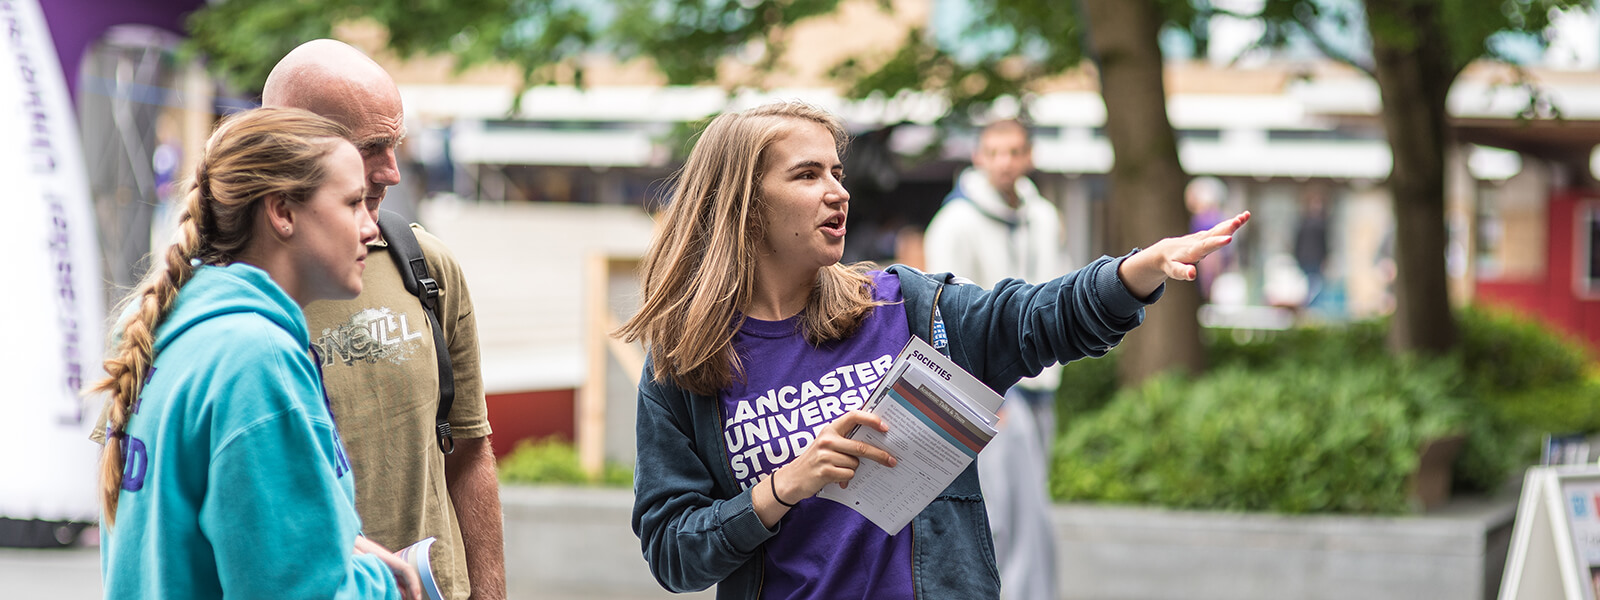 A student ambassador at a Lancaster open day